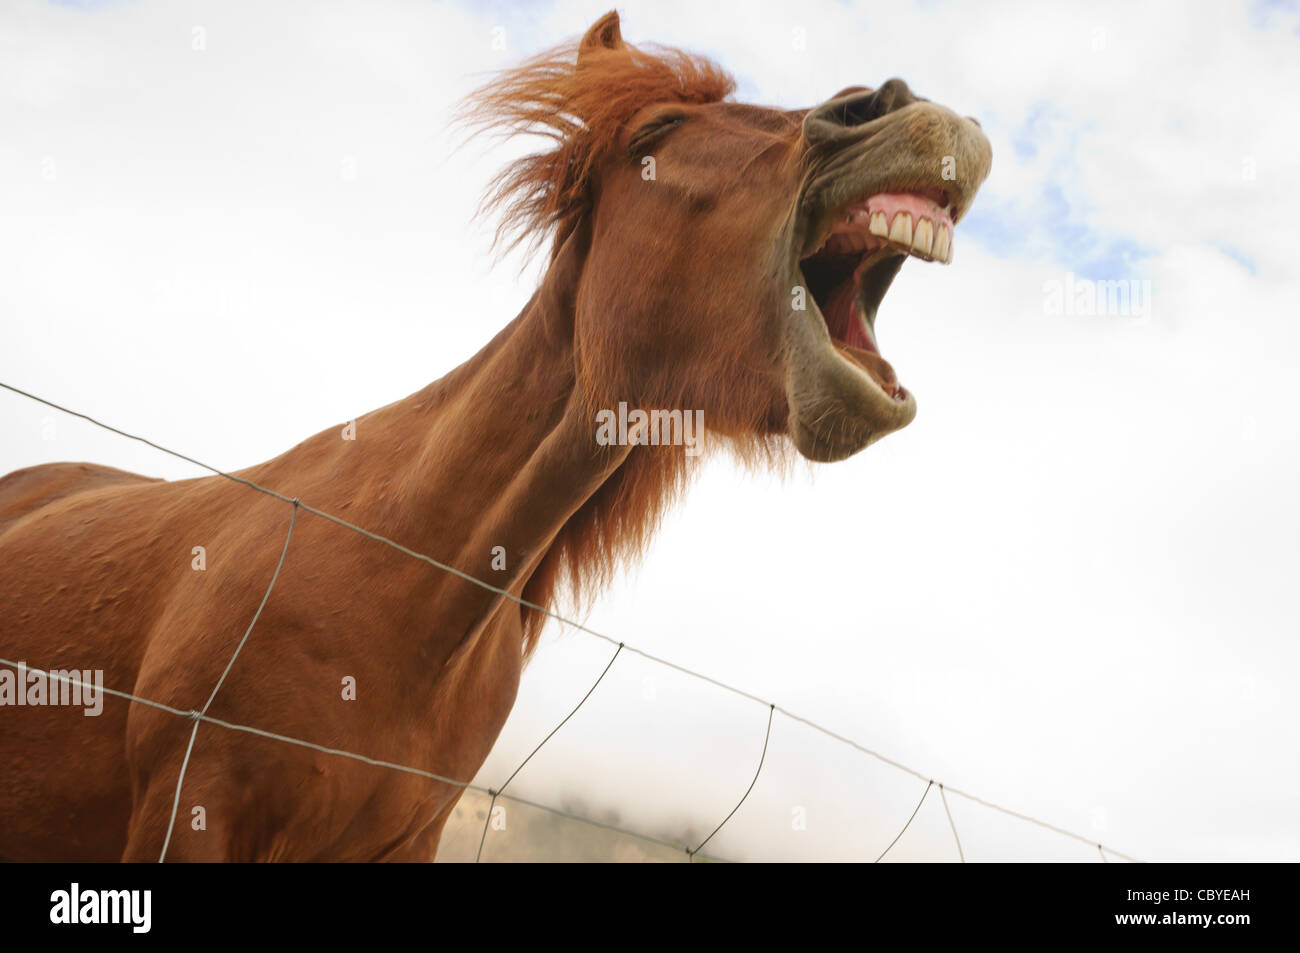 An Icelandic horse makes funny facial expressions. - Stock Image